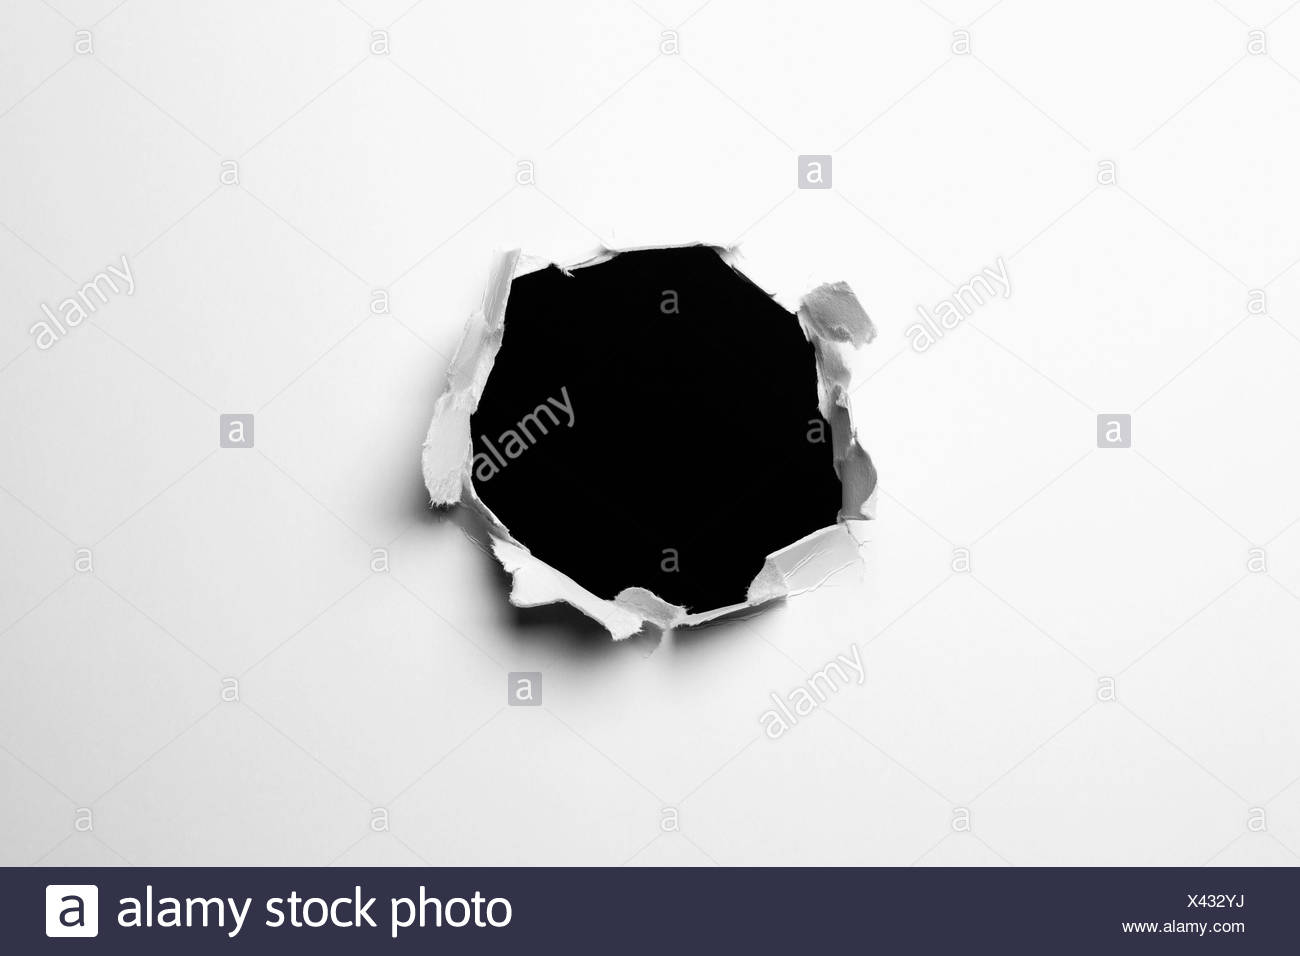 A hole in a wall - Stock Image